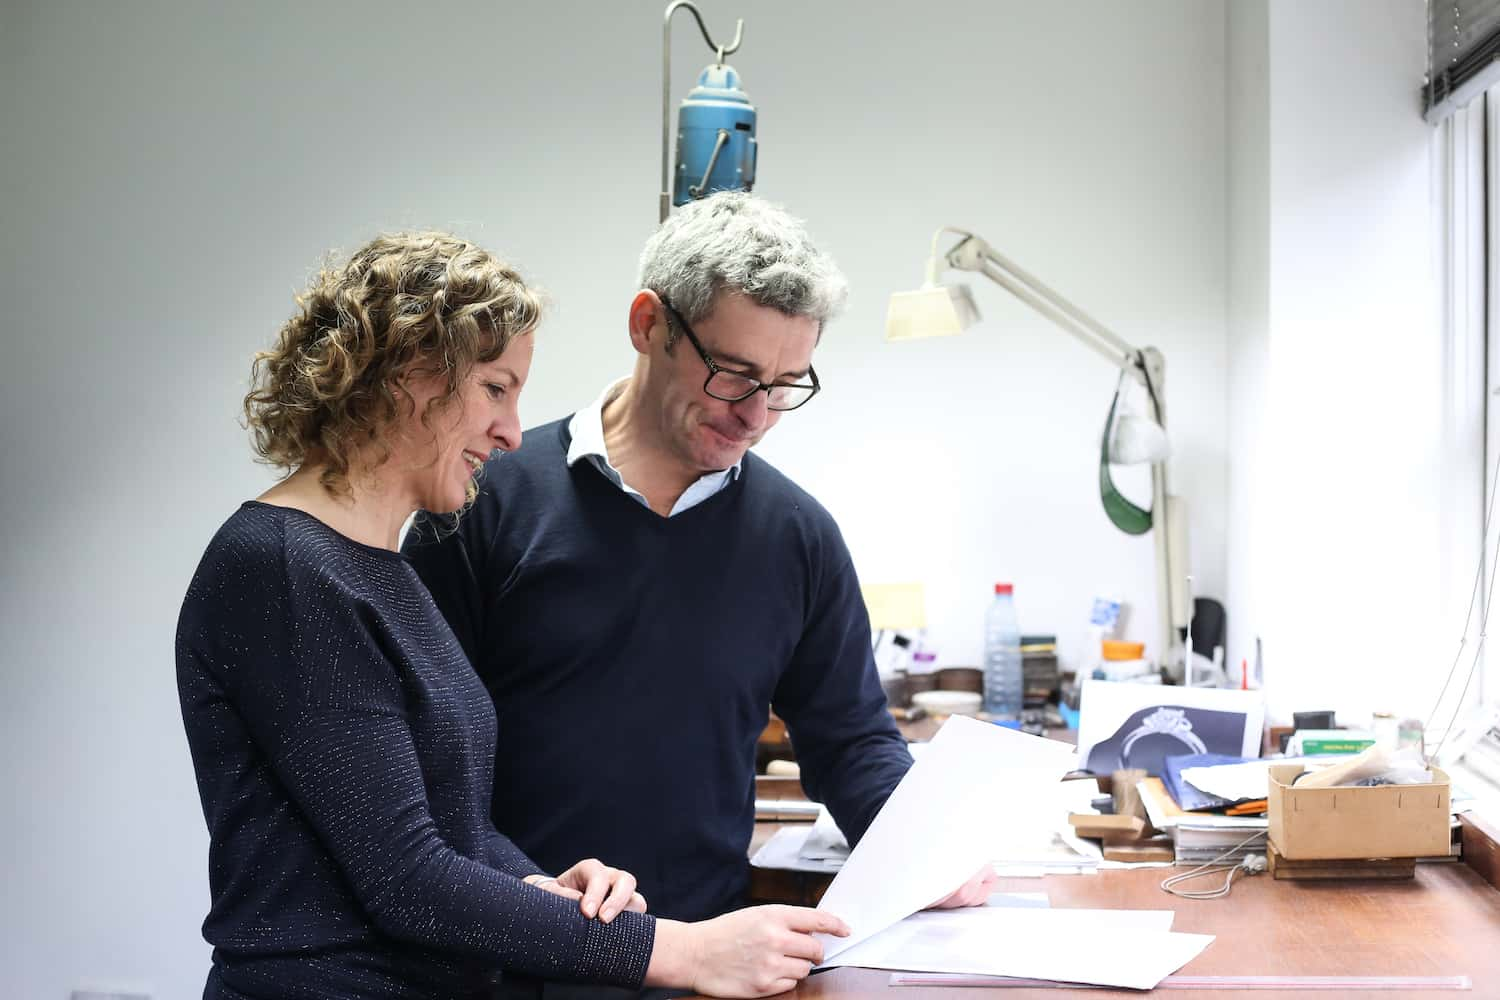 Ruth and a client reviewing some plans